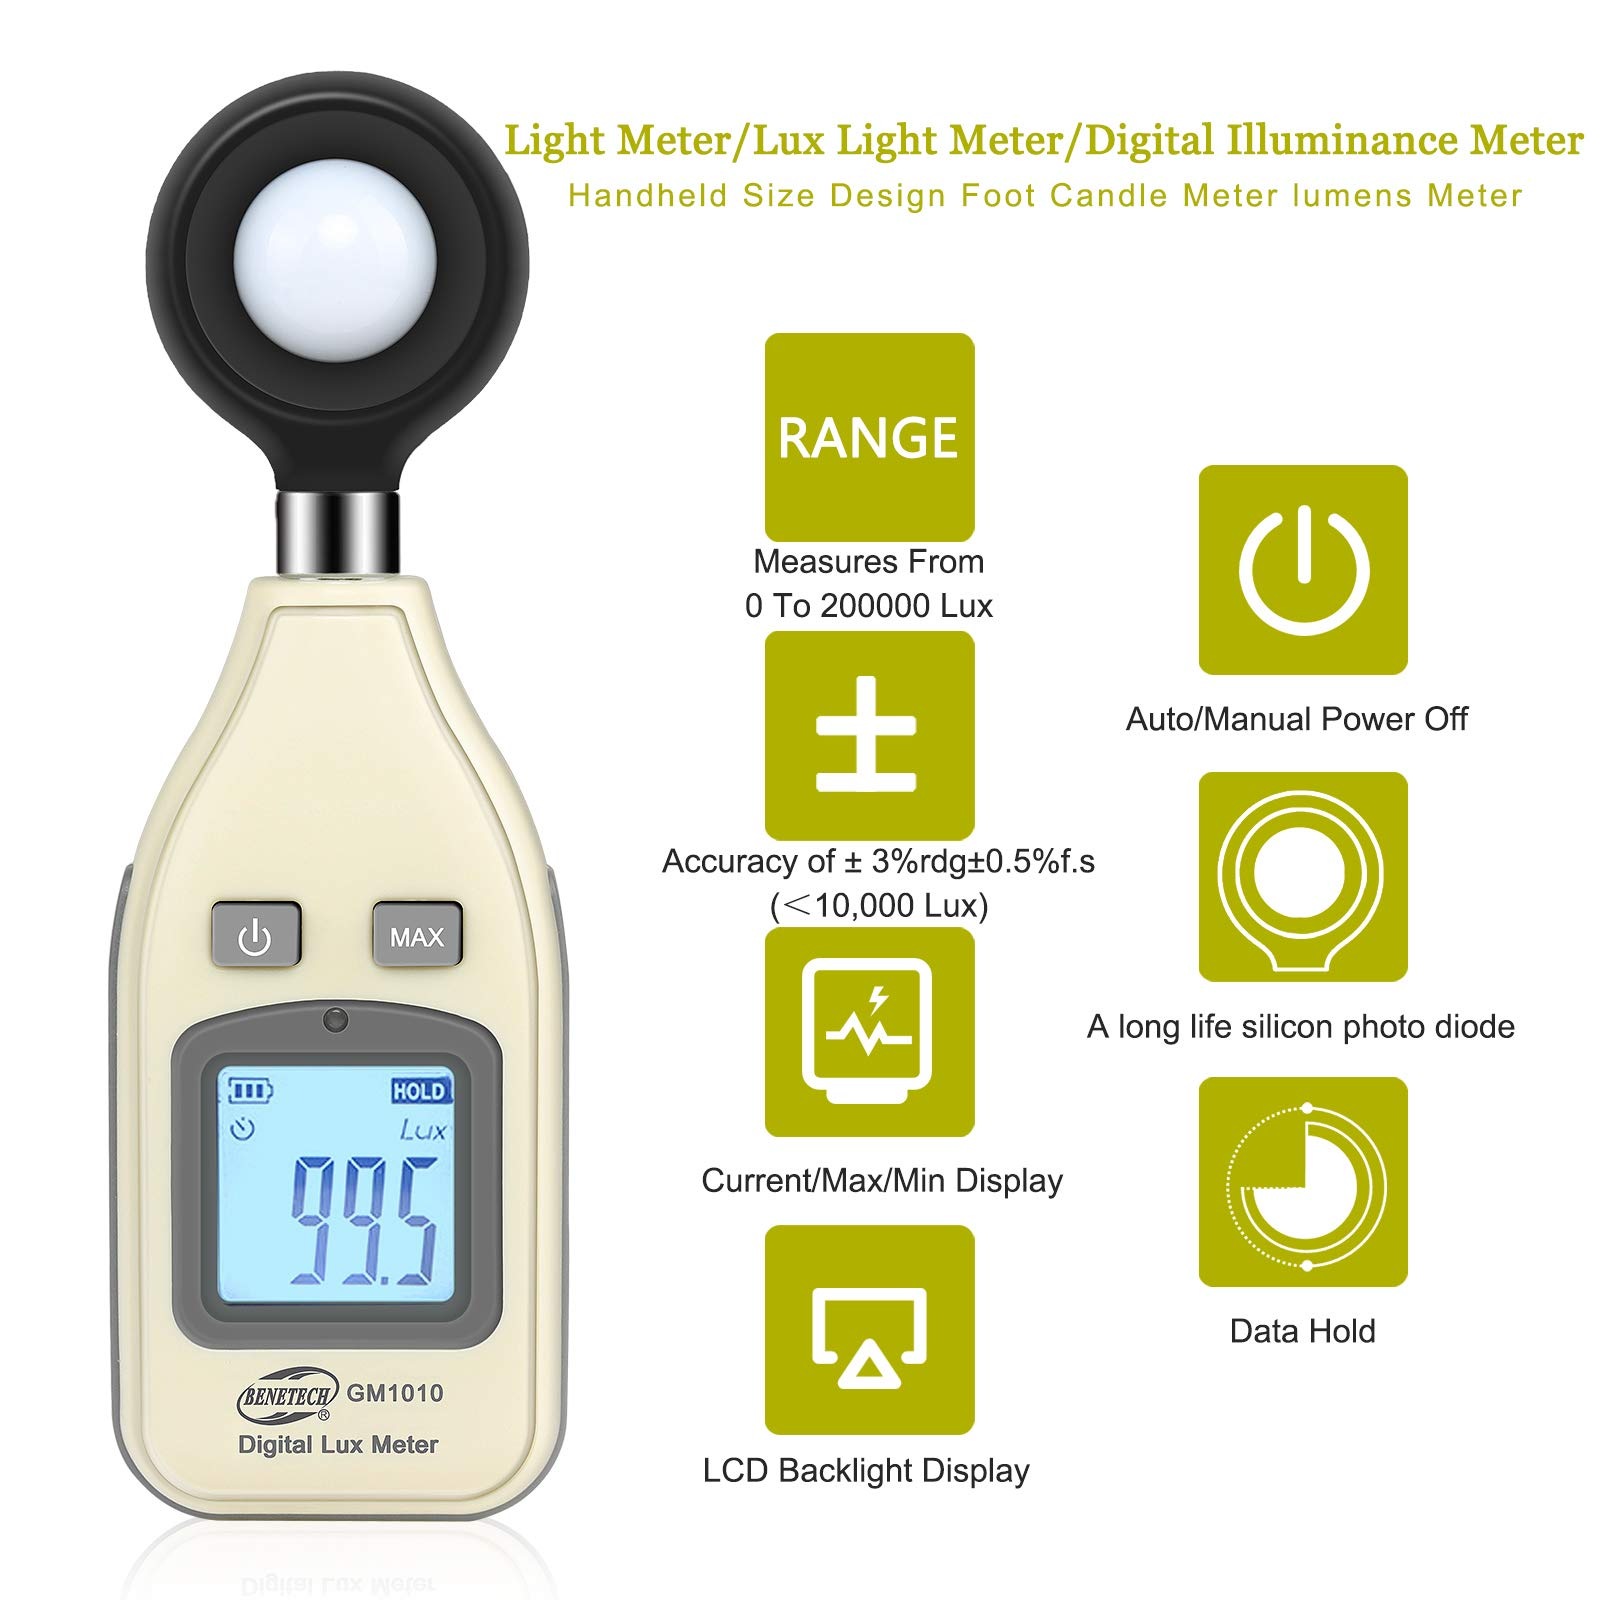 Light Meter Digital Illuminance Meter Measure Light 0~200,000 Lux (0~18500 FC) Handheld Foot Candle Meter Luxmeter MAX/MIN/Data Hold Backlight LCD Display lumens Meter for Plant led Light Auto shutoff by Wrea